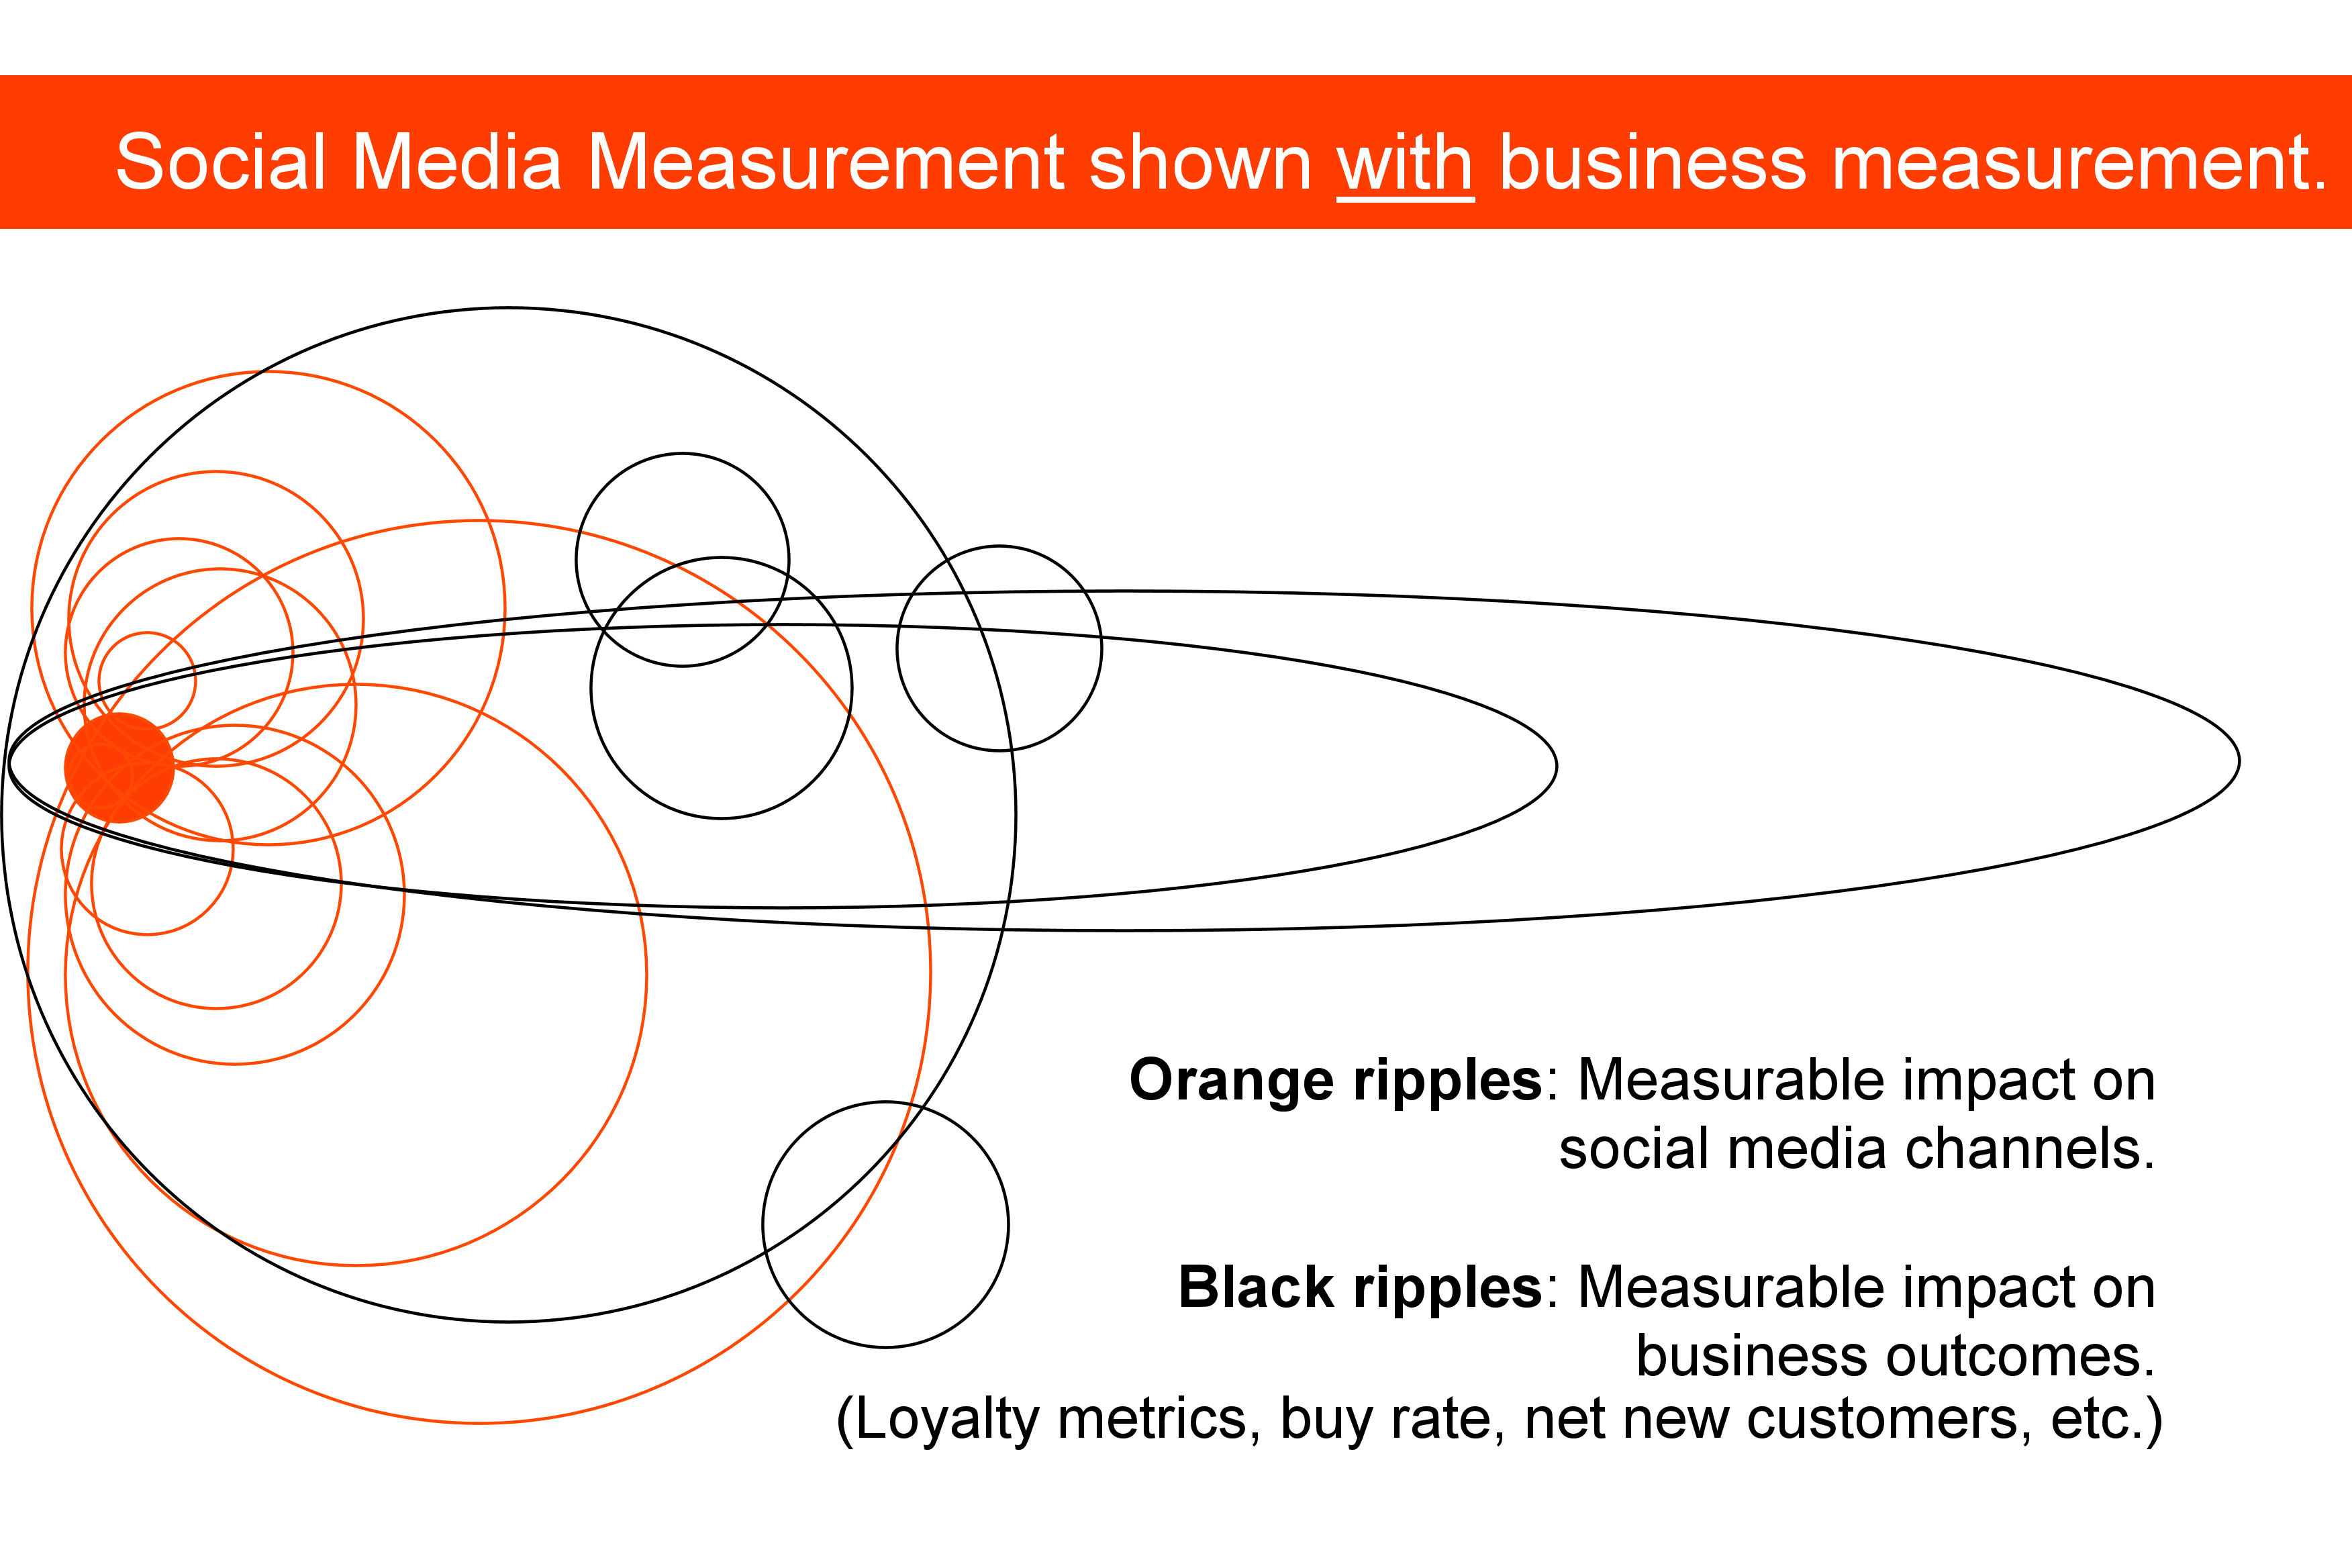 social media measurement process Figure 1 illustrates the main phases of the social media measurement process  the second phase in the social media process is definition .